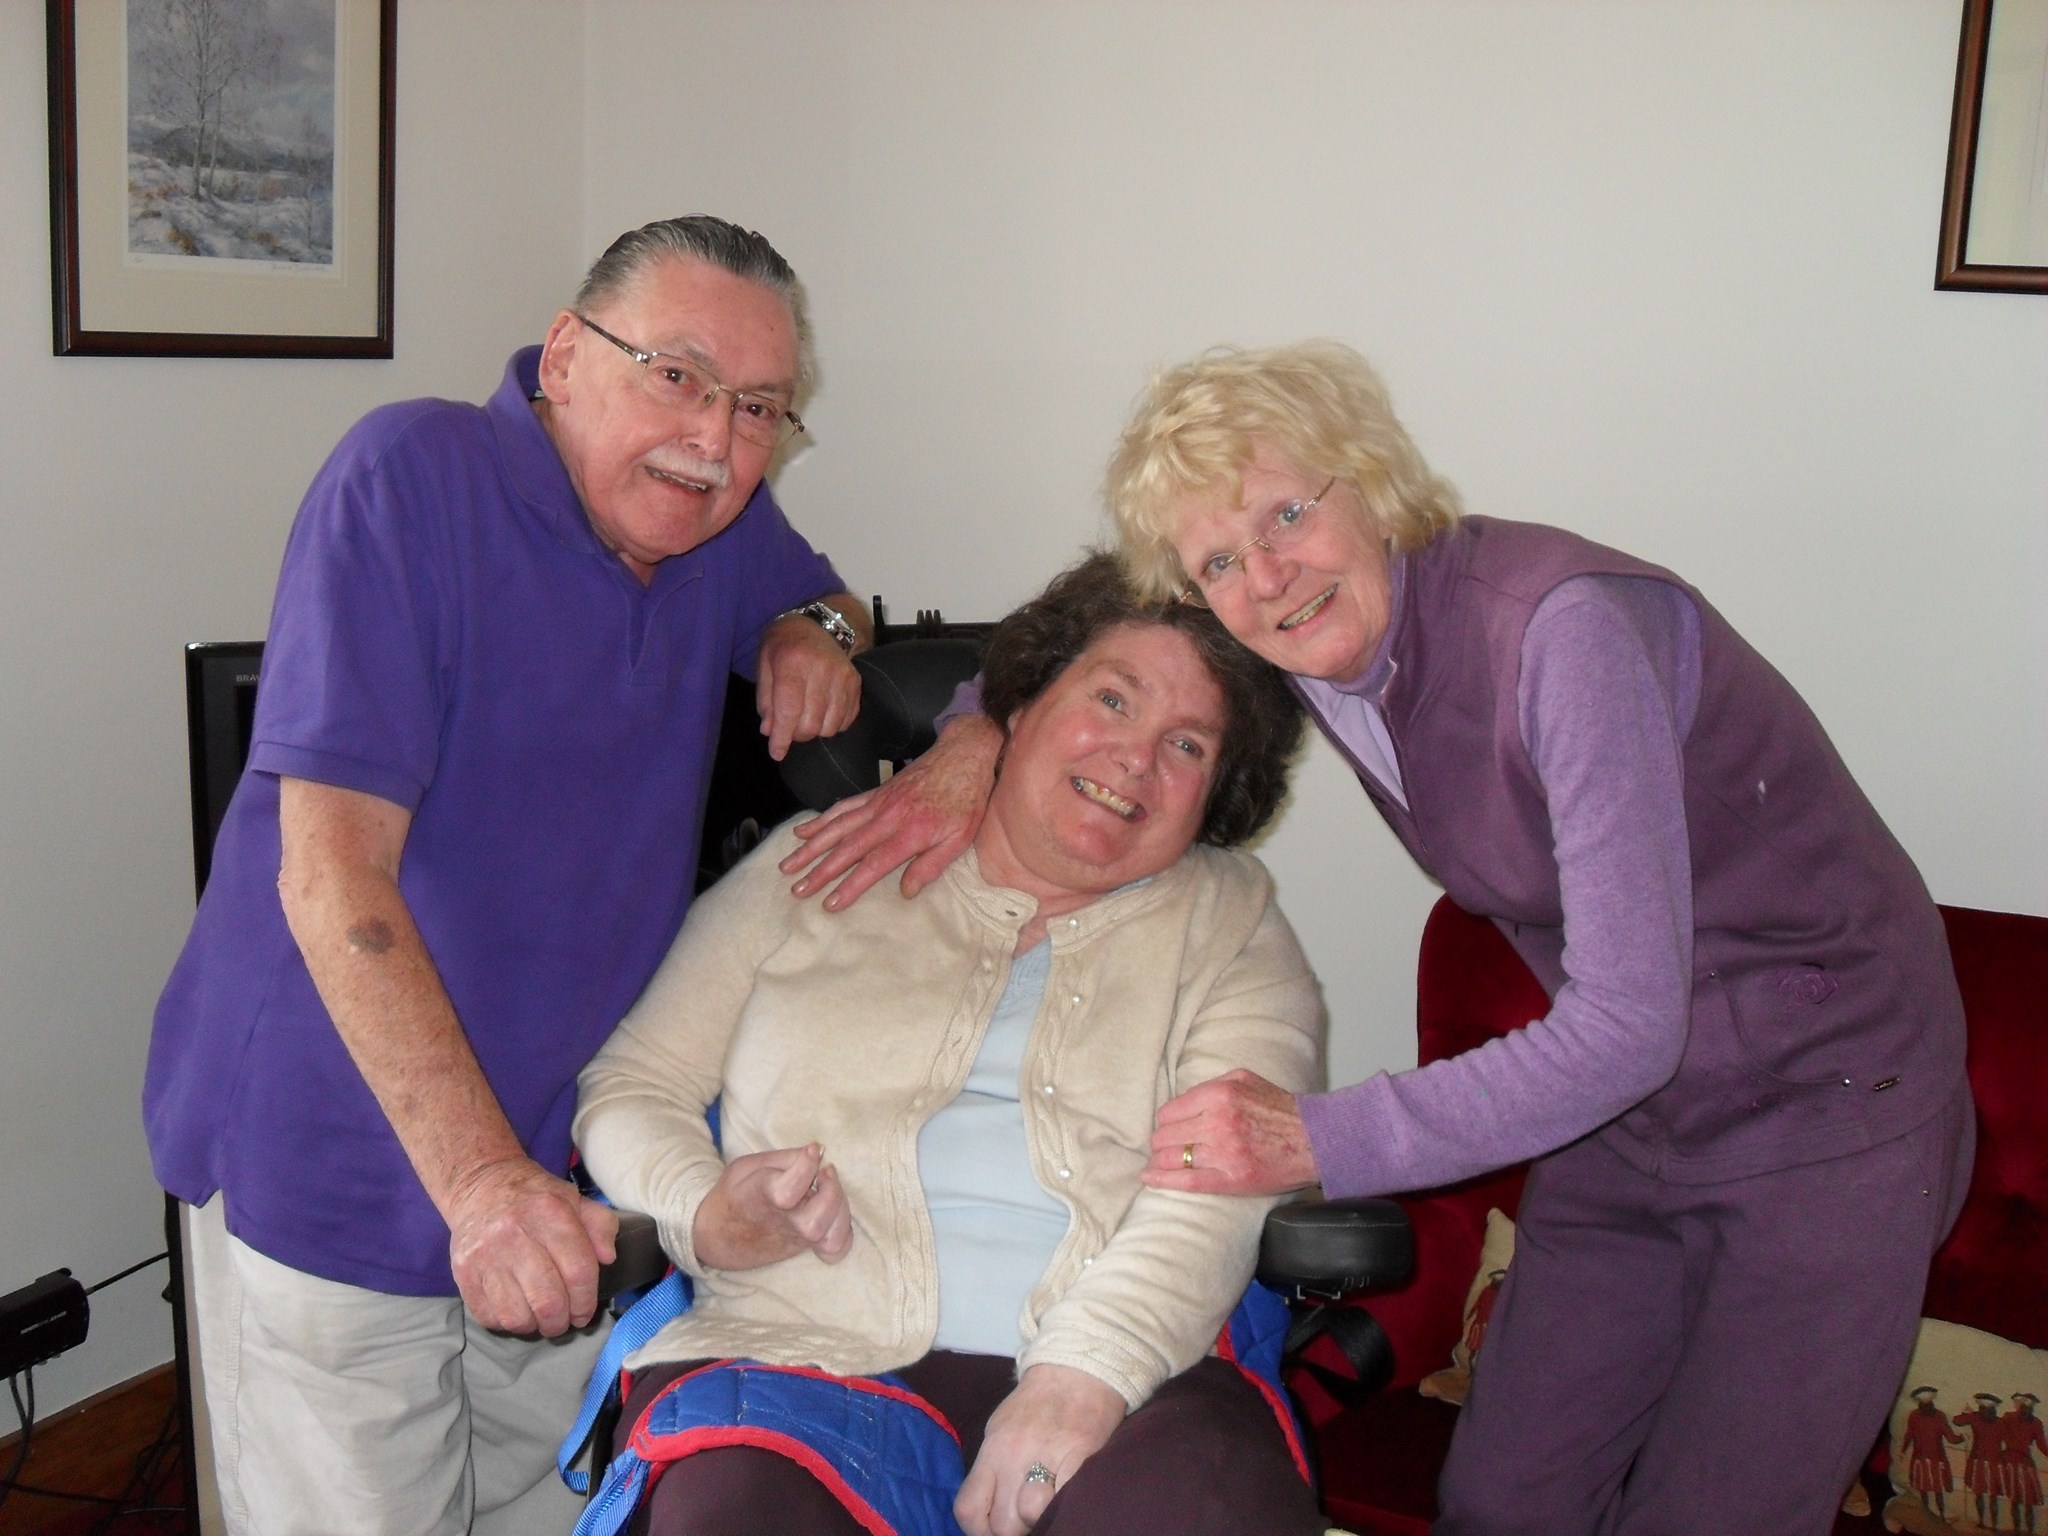 Mavis with sister Ruth and husband Cha, Dinnet, 2010